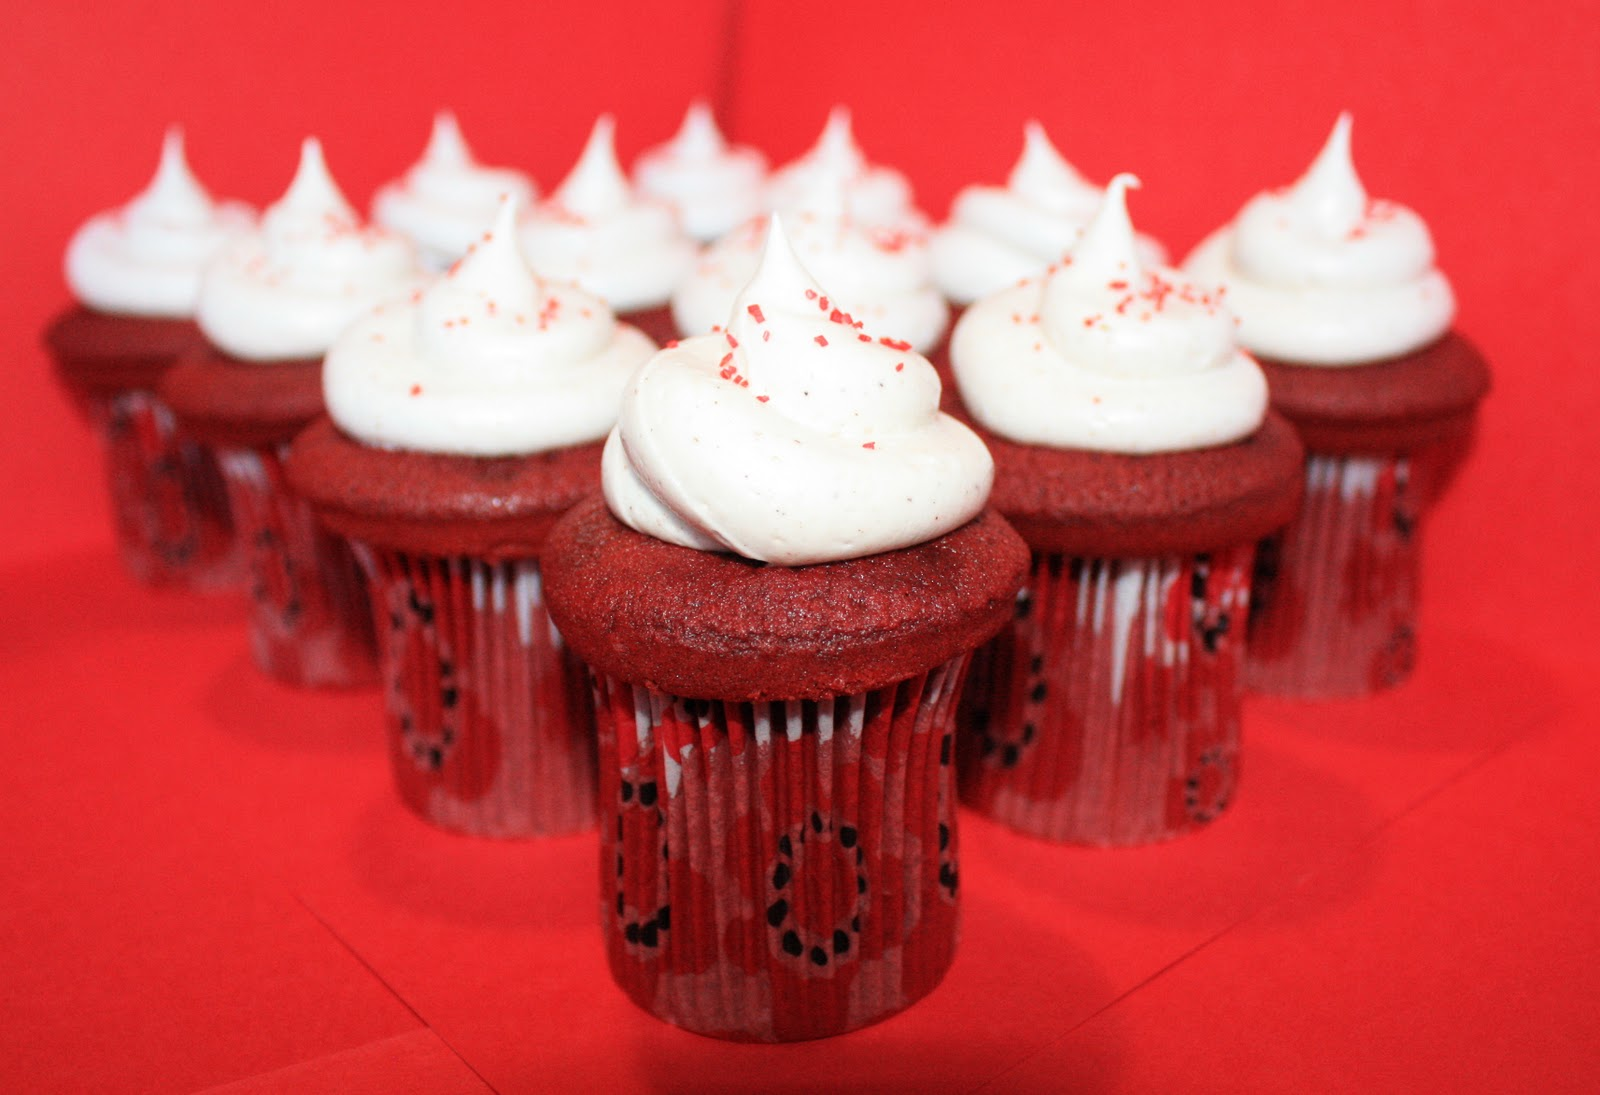 Cupcakes Take The Cake: Super Tall Red Velvet Cupcakes